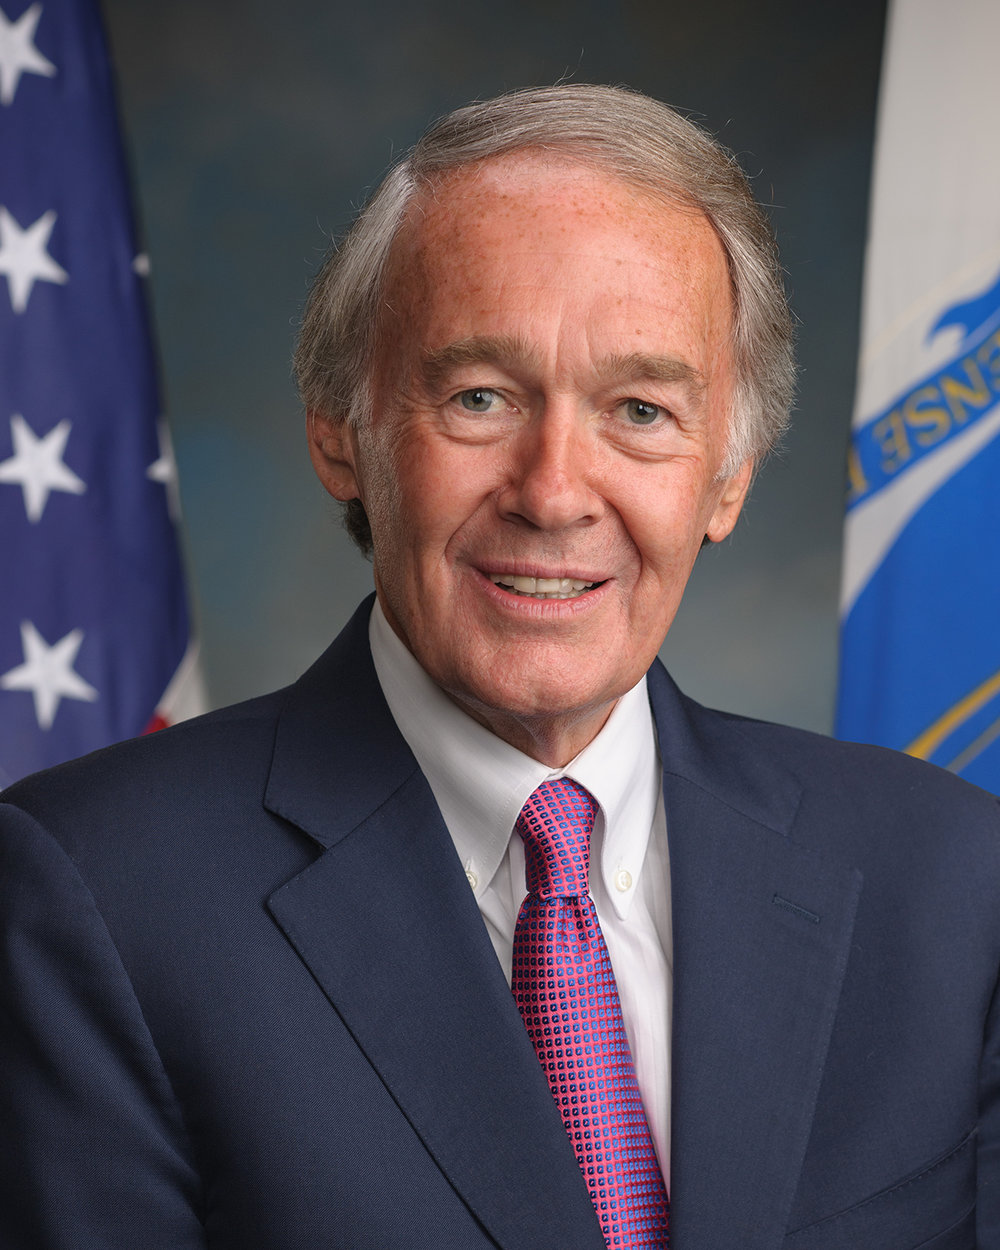 U.S. Senator Ed Markey - Boston Office 975 JFK Federal Building 15 New Sudbury Street Boston, MA 02203 Phone: (617) 565-8519Contact By Email